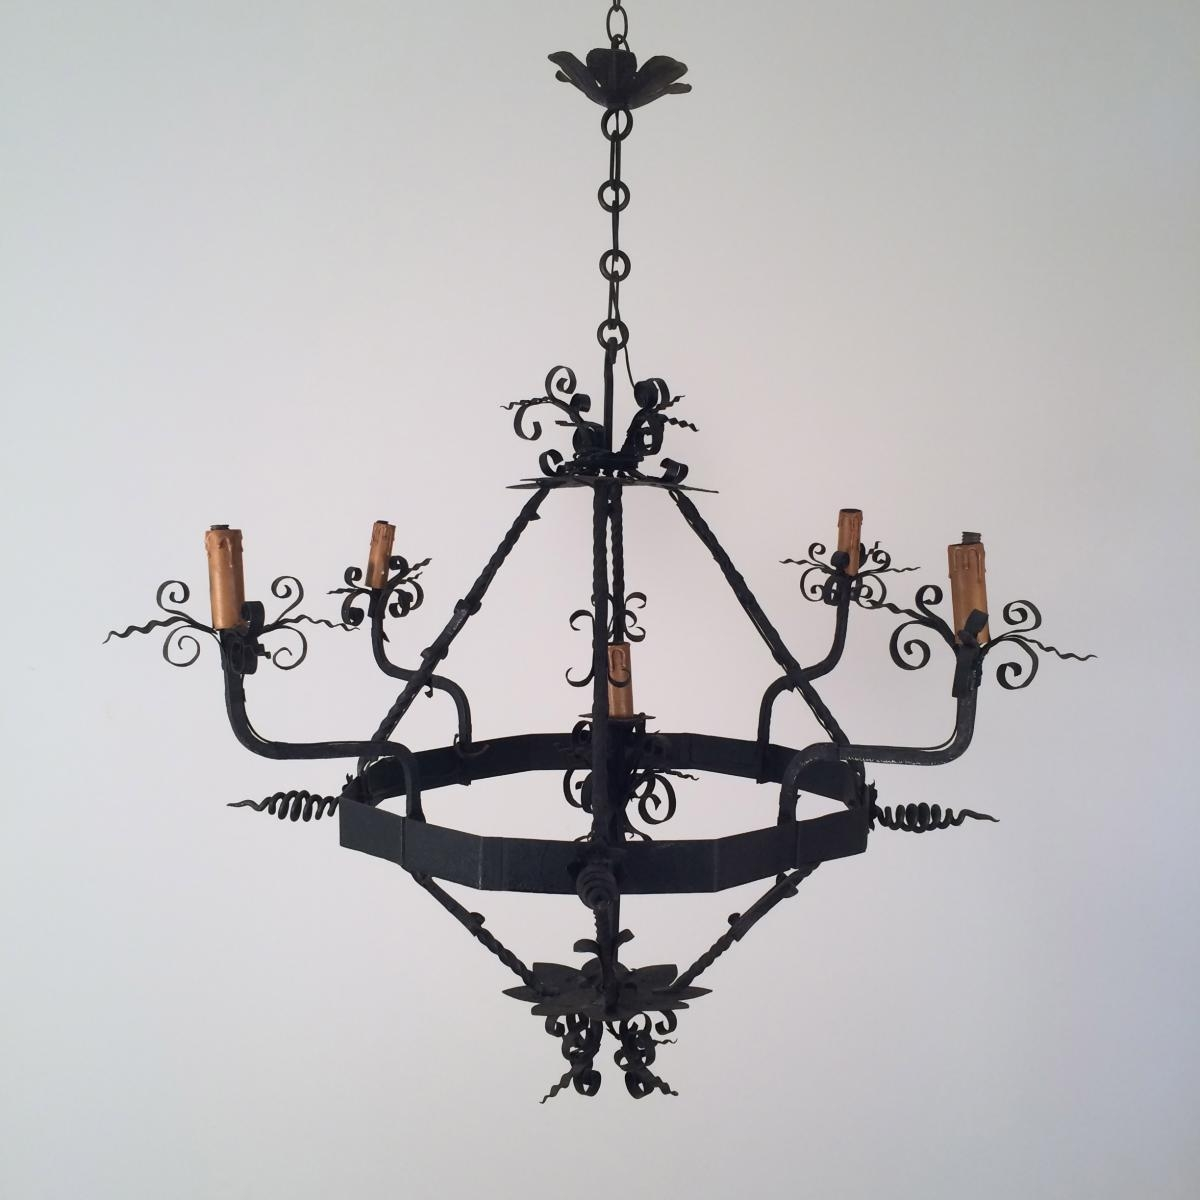 Vintage Wrought Iron Chandelier 1960s For Sale At Pamono Pertaining To Vintage Wrought Iron Chandelier (Image 12 of 15)